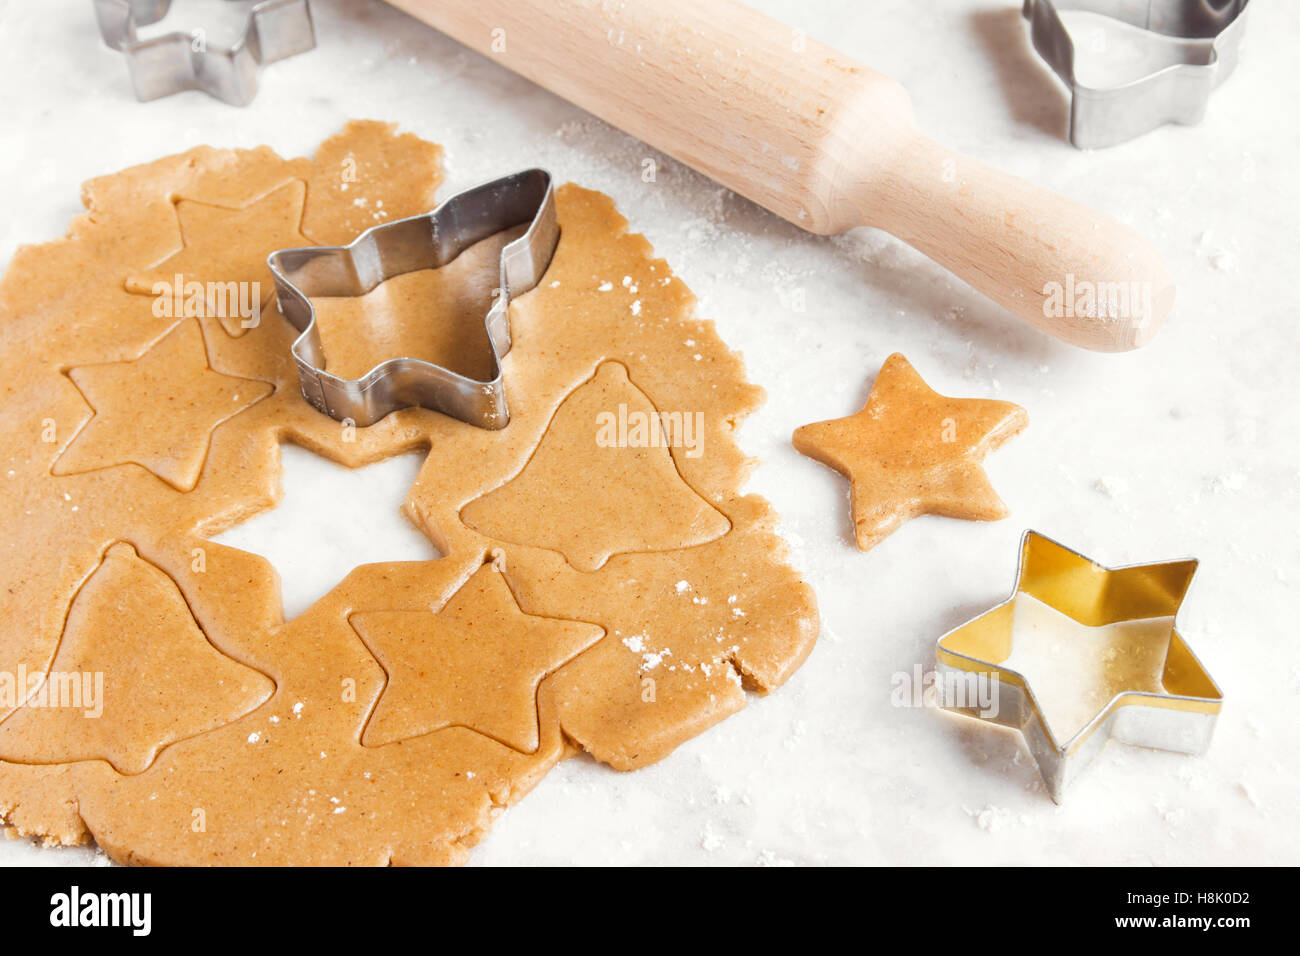 Preparing Christmas gingerbread tree cookies with cutter, dough and rolling pin - homemade festive Christmas bakery - Stock Image